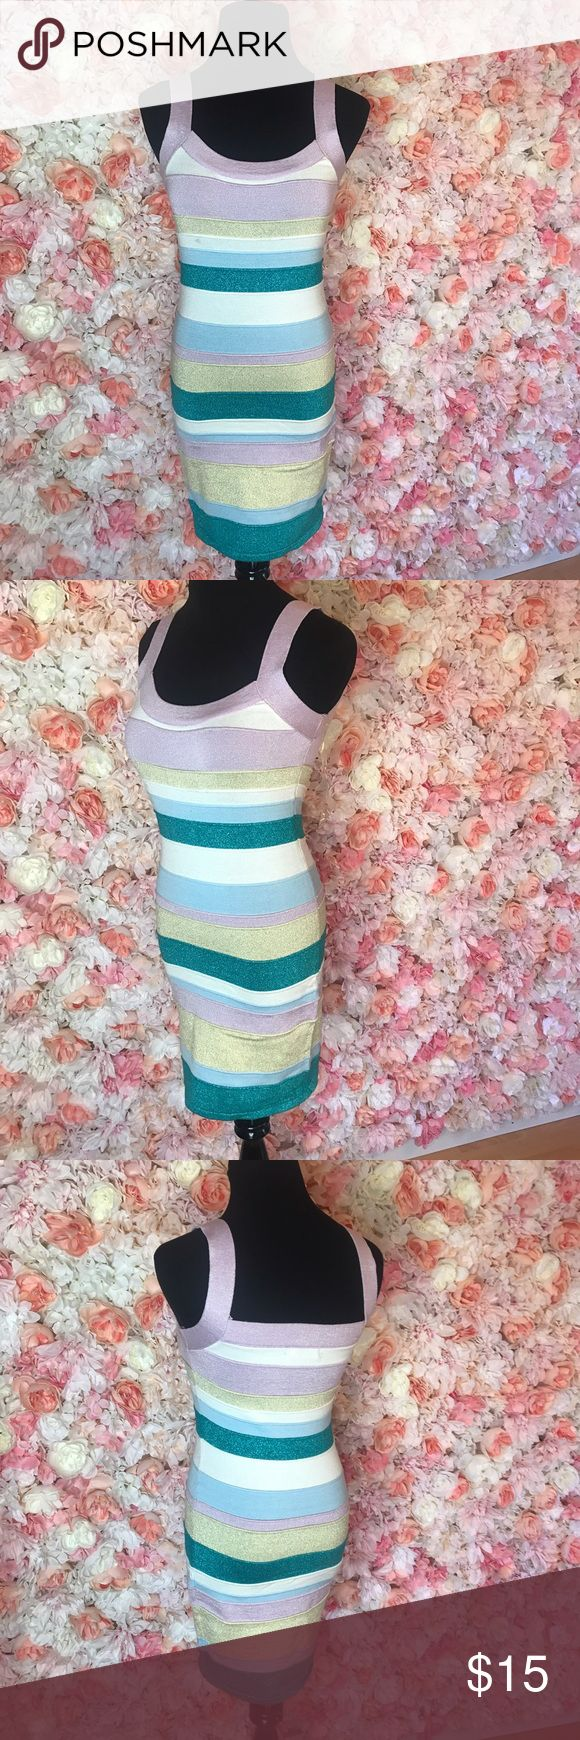 Multi color spring dress Spring cleaning some gently used pieces from my personal closet. Any questions feel free to ask Dresses Mini